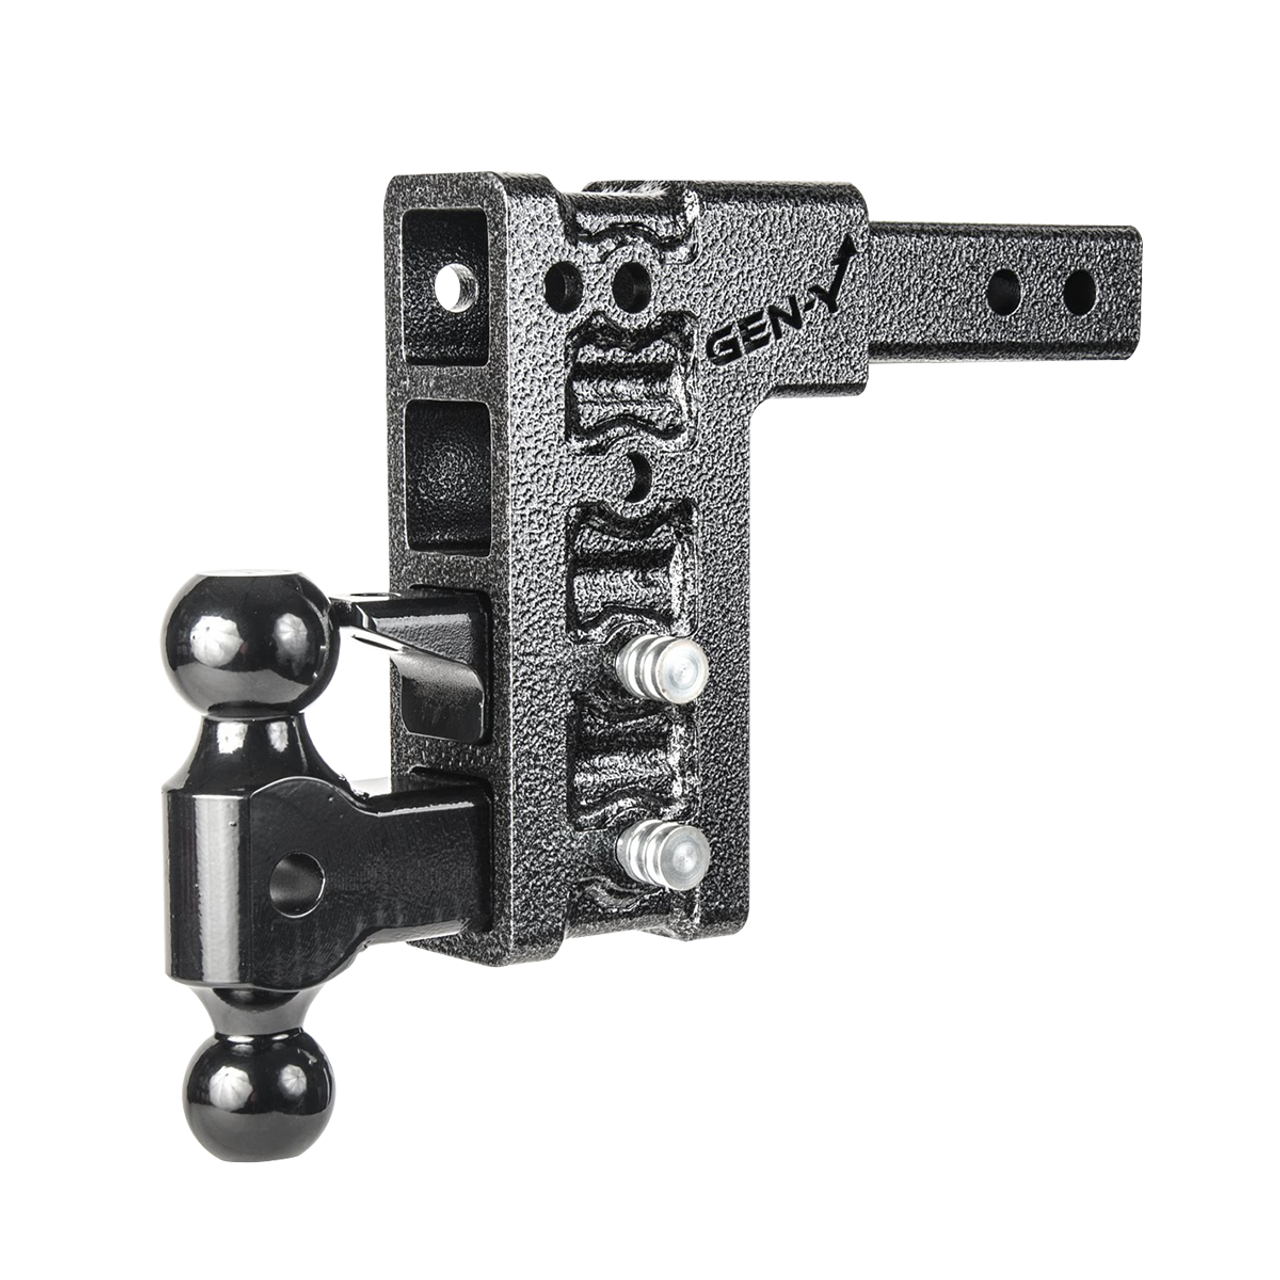 GH-324 --- Four Position Mega-Duty Shank with Dual Ball and Pintle - 10,000 lb Capacity